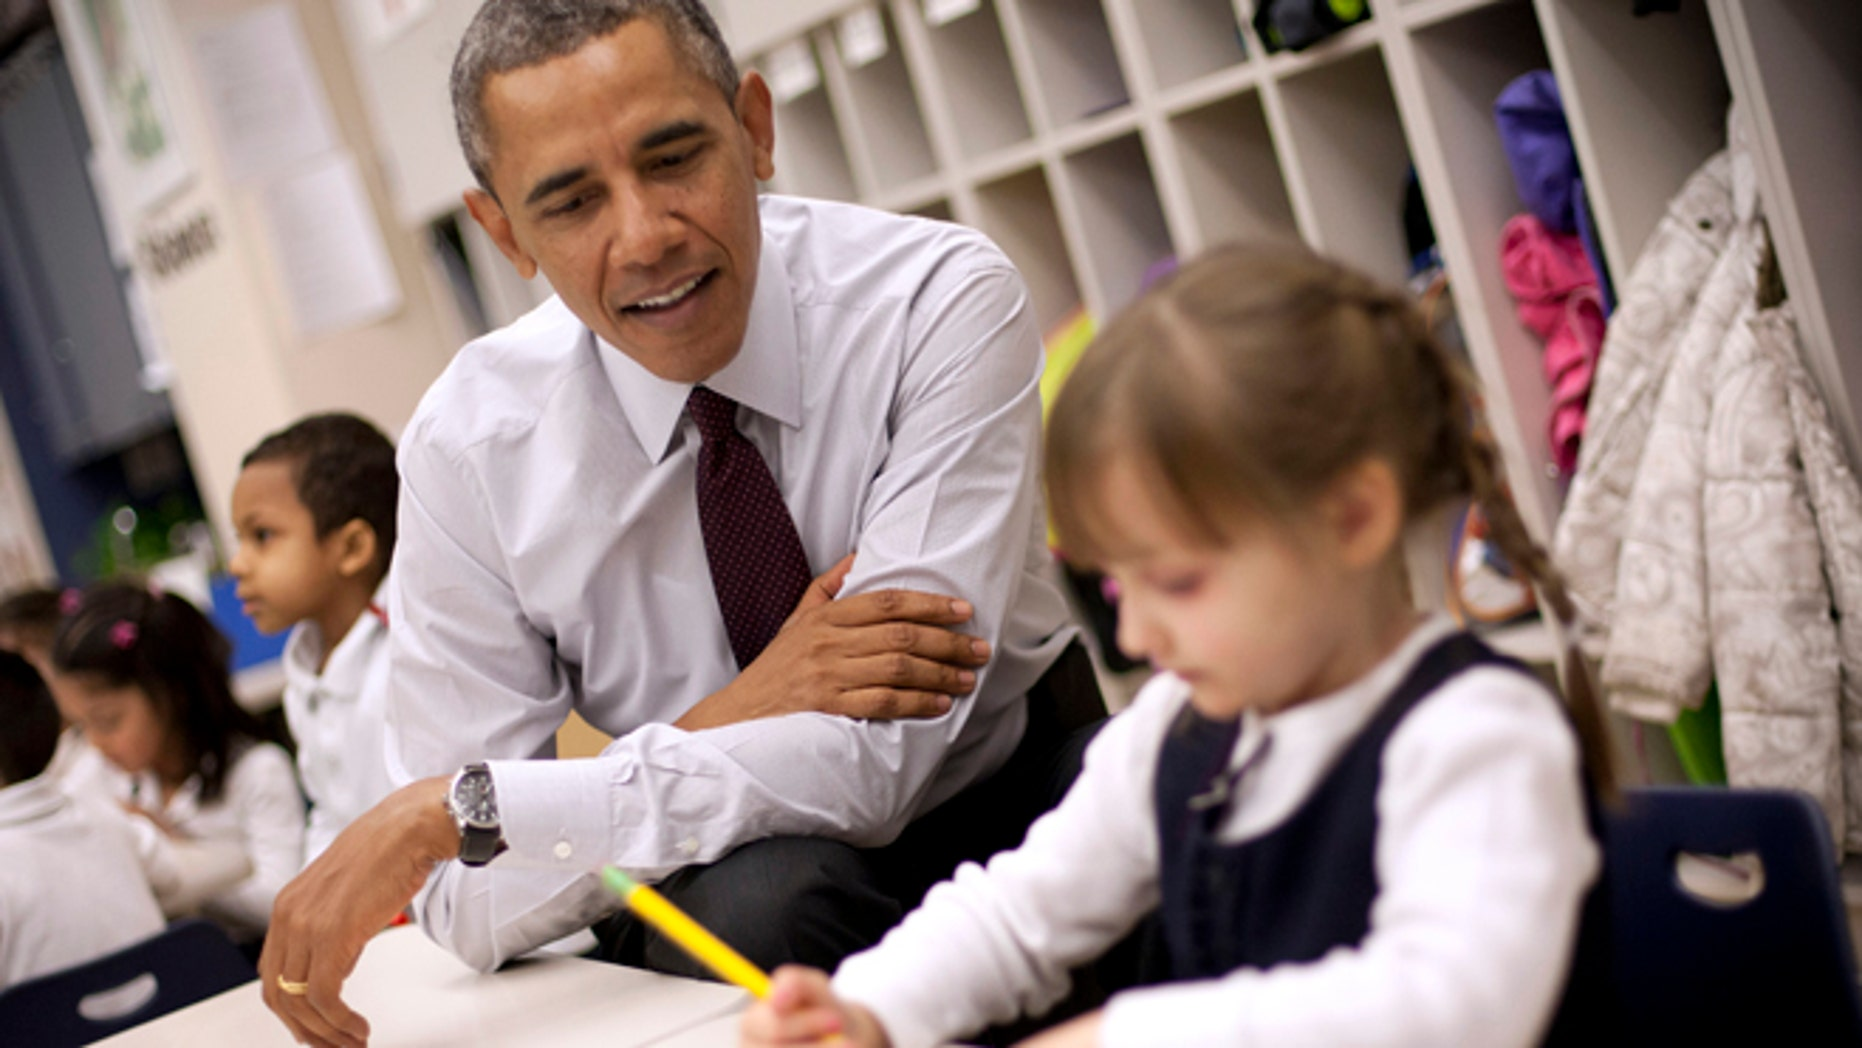 President Barack Obama sits with Emily Hare as she completes her spelling lessons during his visit to a preschool classroom at Powell Elementary School in the Petworth neighborhood of Washington, Tuesday, March 4, 2014. Obama visited the school to talk about his 2015 budget proposal, which was released today. Powell elementary has seen rapid growth in recent years and serves a predominantly Hispanic student body. Washington DC Mayor Vincent Gray, who greeted Obama at the school, recently directed $20 million to Powell for a planned modernization and addition. (AP Photo/Pablo Martinez Monsivais)